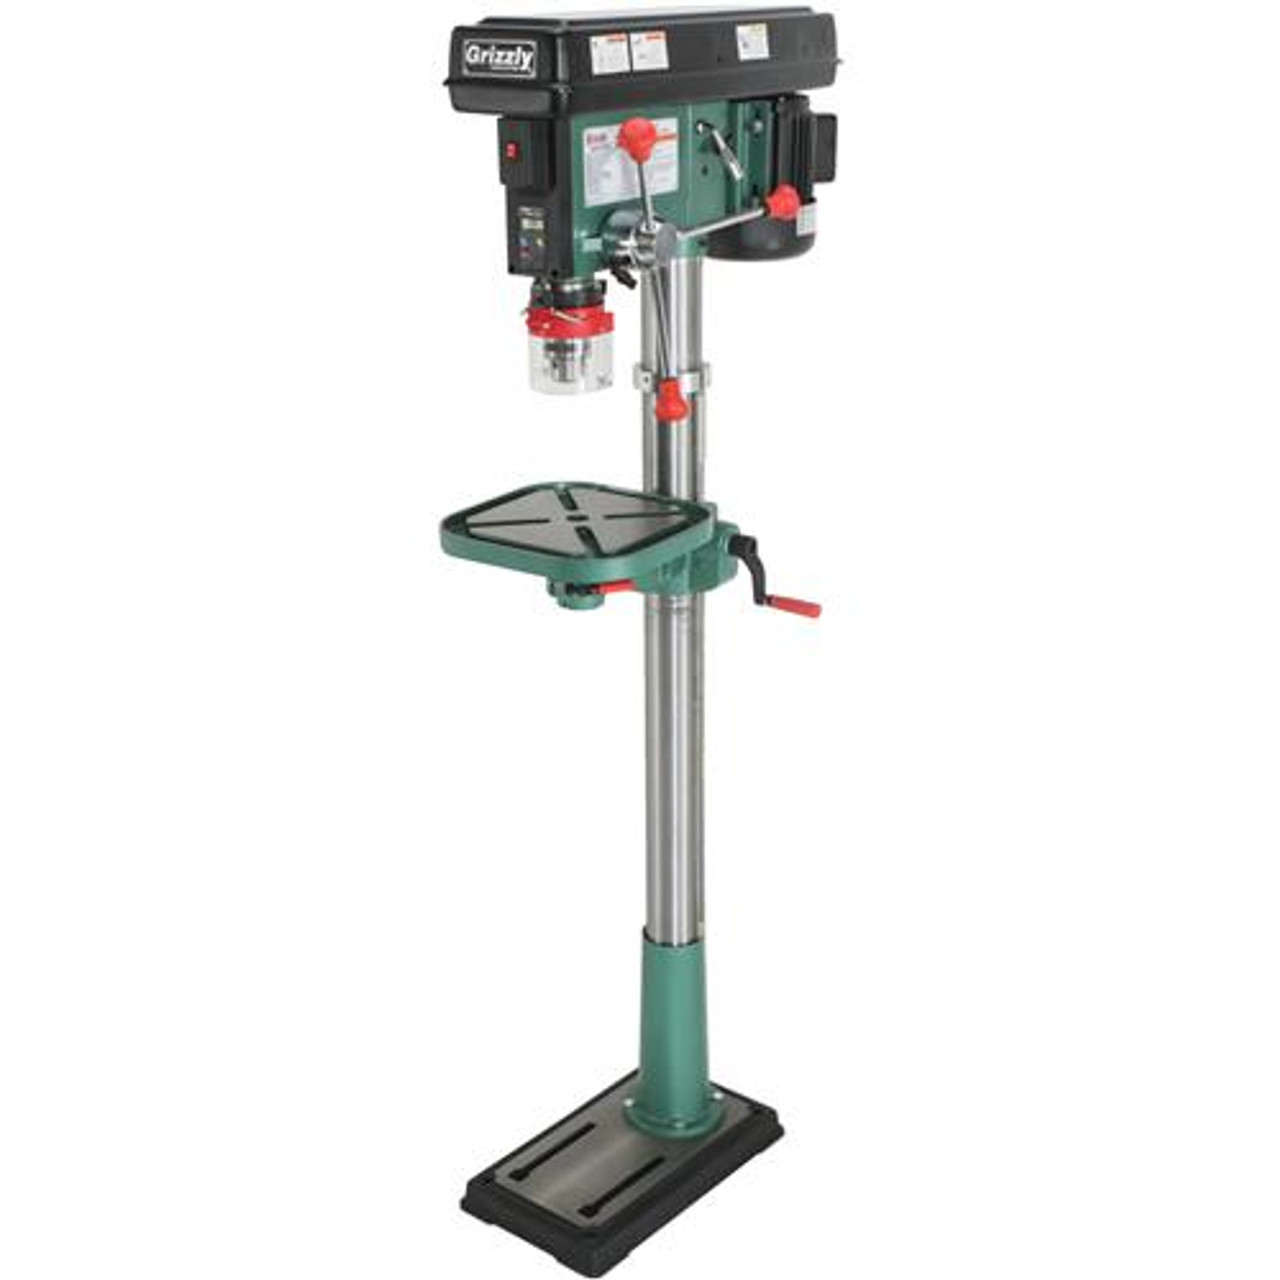 Grizzly G0794 - Floor Drill Press with Laser and DRO